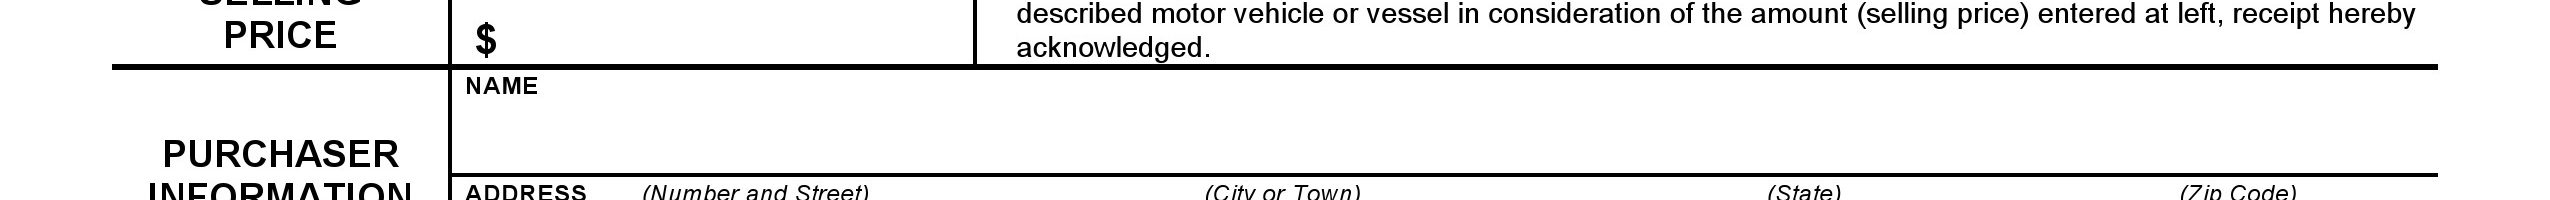 Connecticut Vehicle Bill of Sale Form